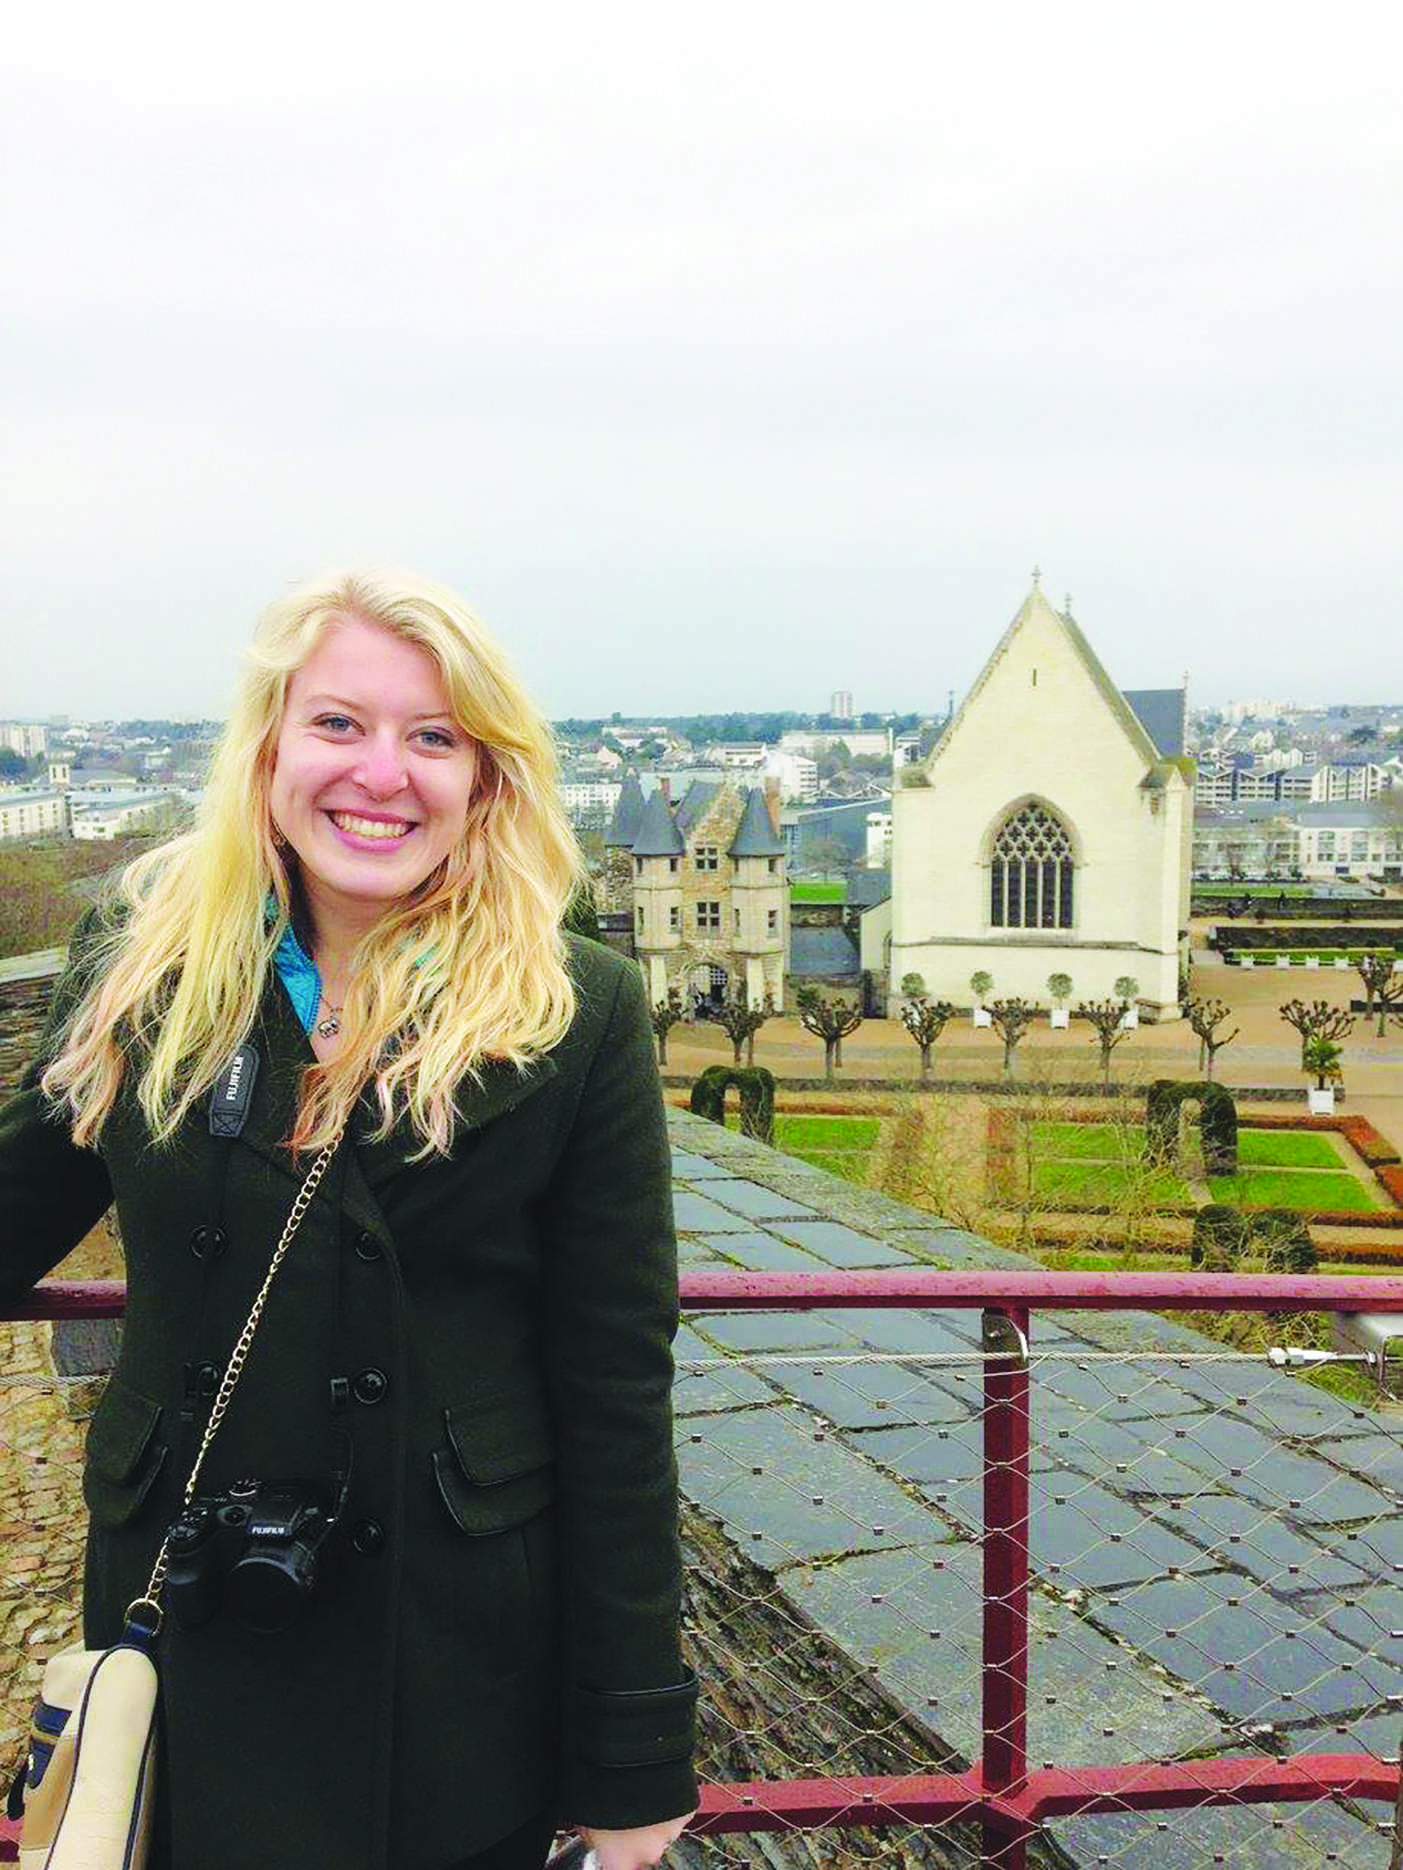 Katelyn Byng spent the last semester primarily in France where she had the chance to work on completing her French minor.